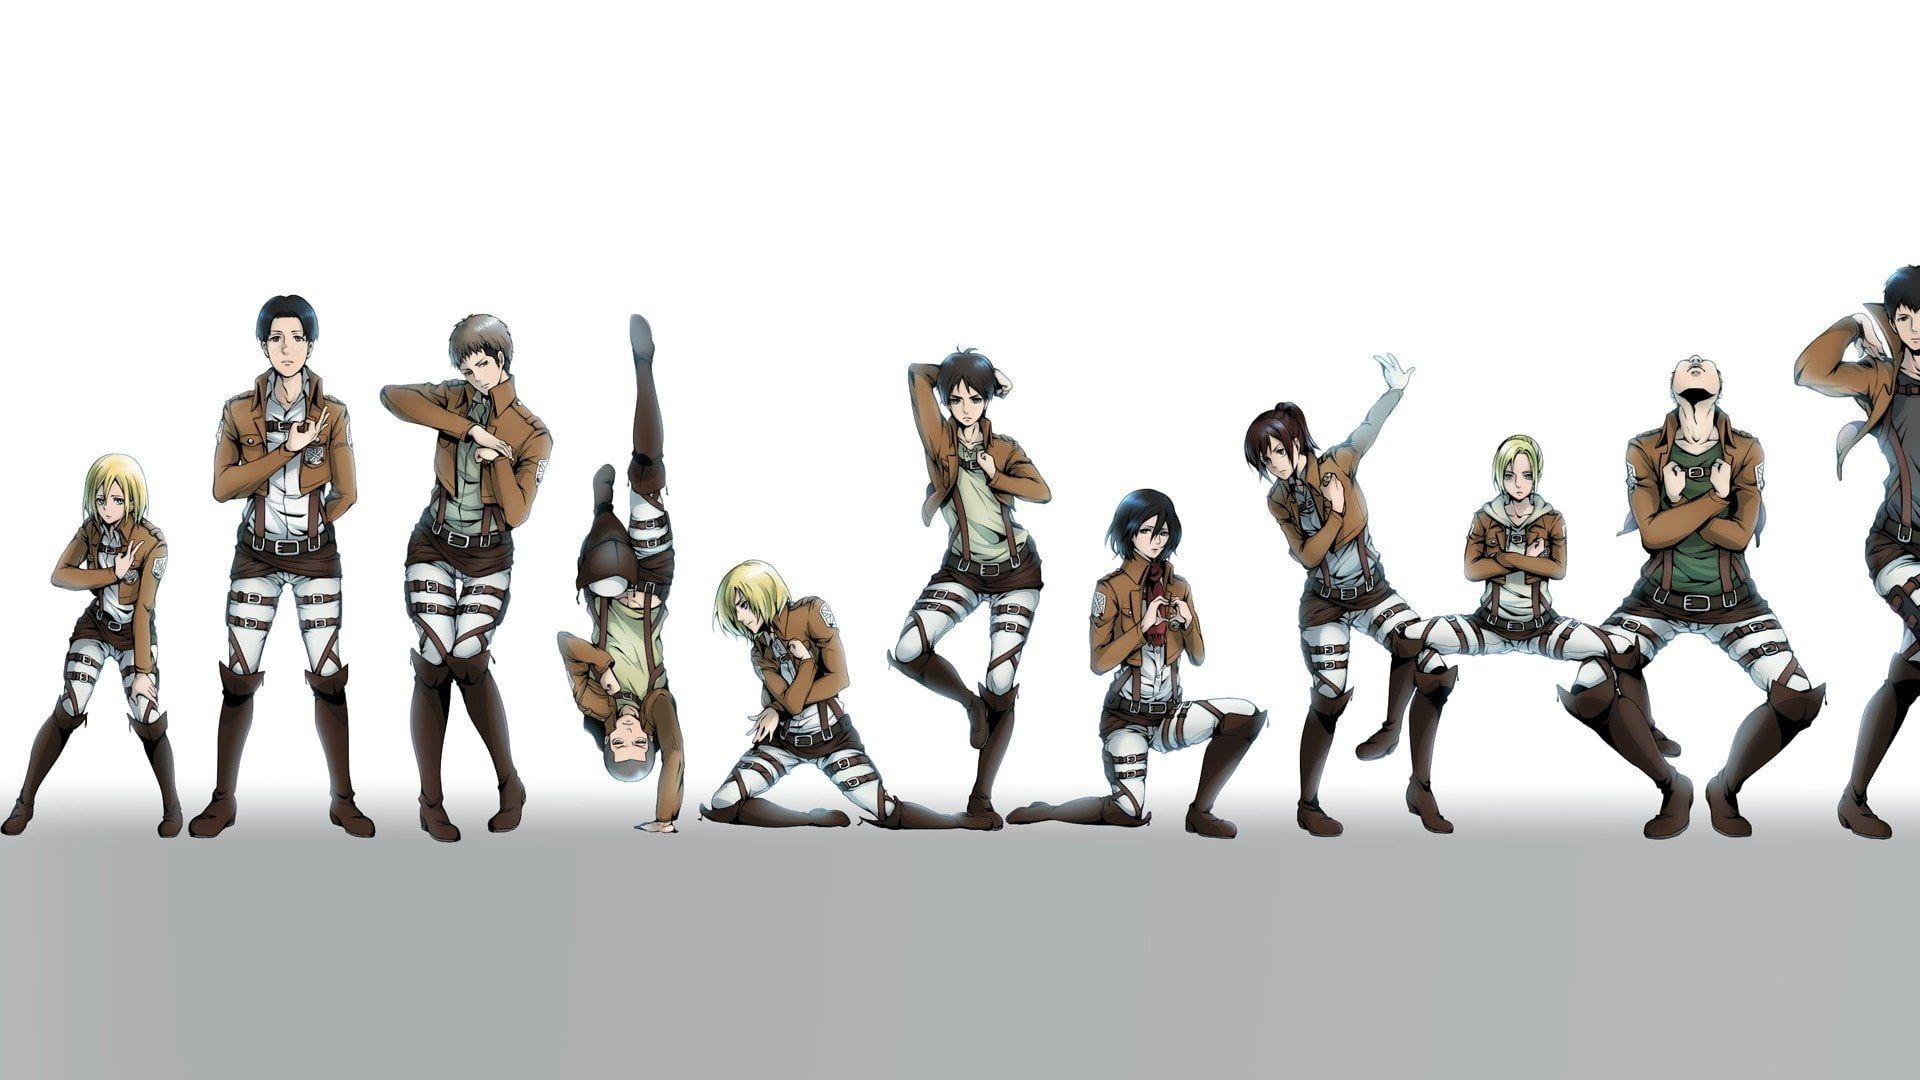 Attack On Titan Dual Monitor Wallpapers Top Free Attack On Titan Dual Monitor Backgrounds Wallpaperaccess